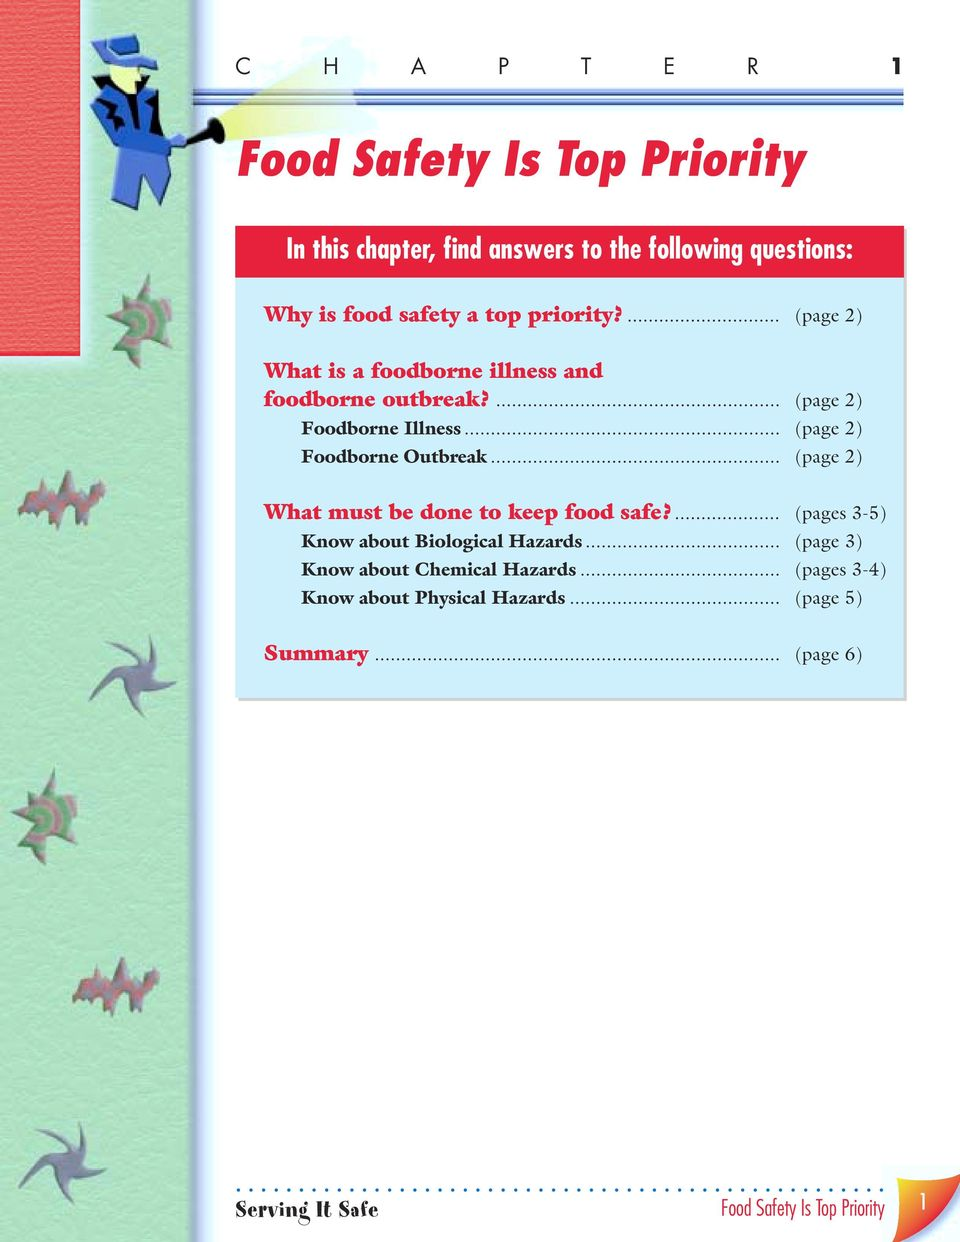 .. (page 2) Foodborne Outbreak... (page 2) What must be done to keep food safe?